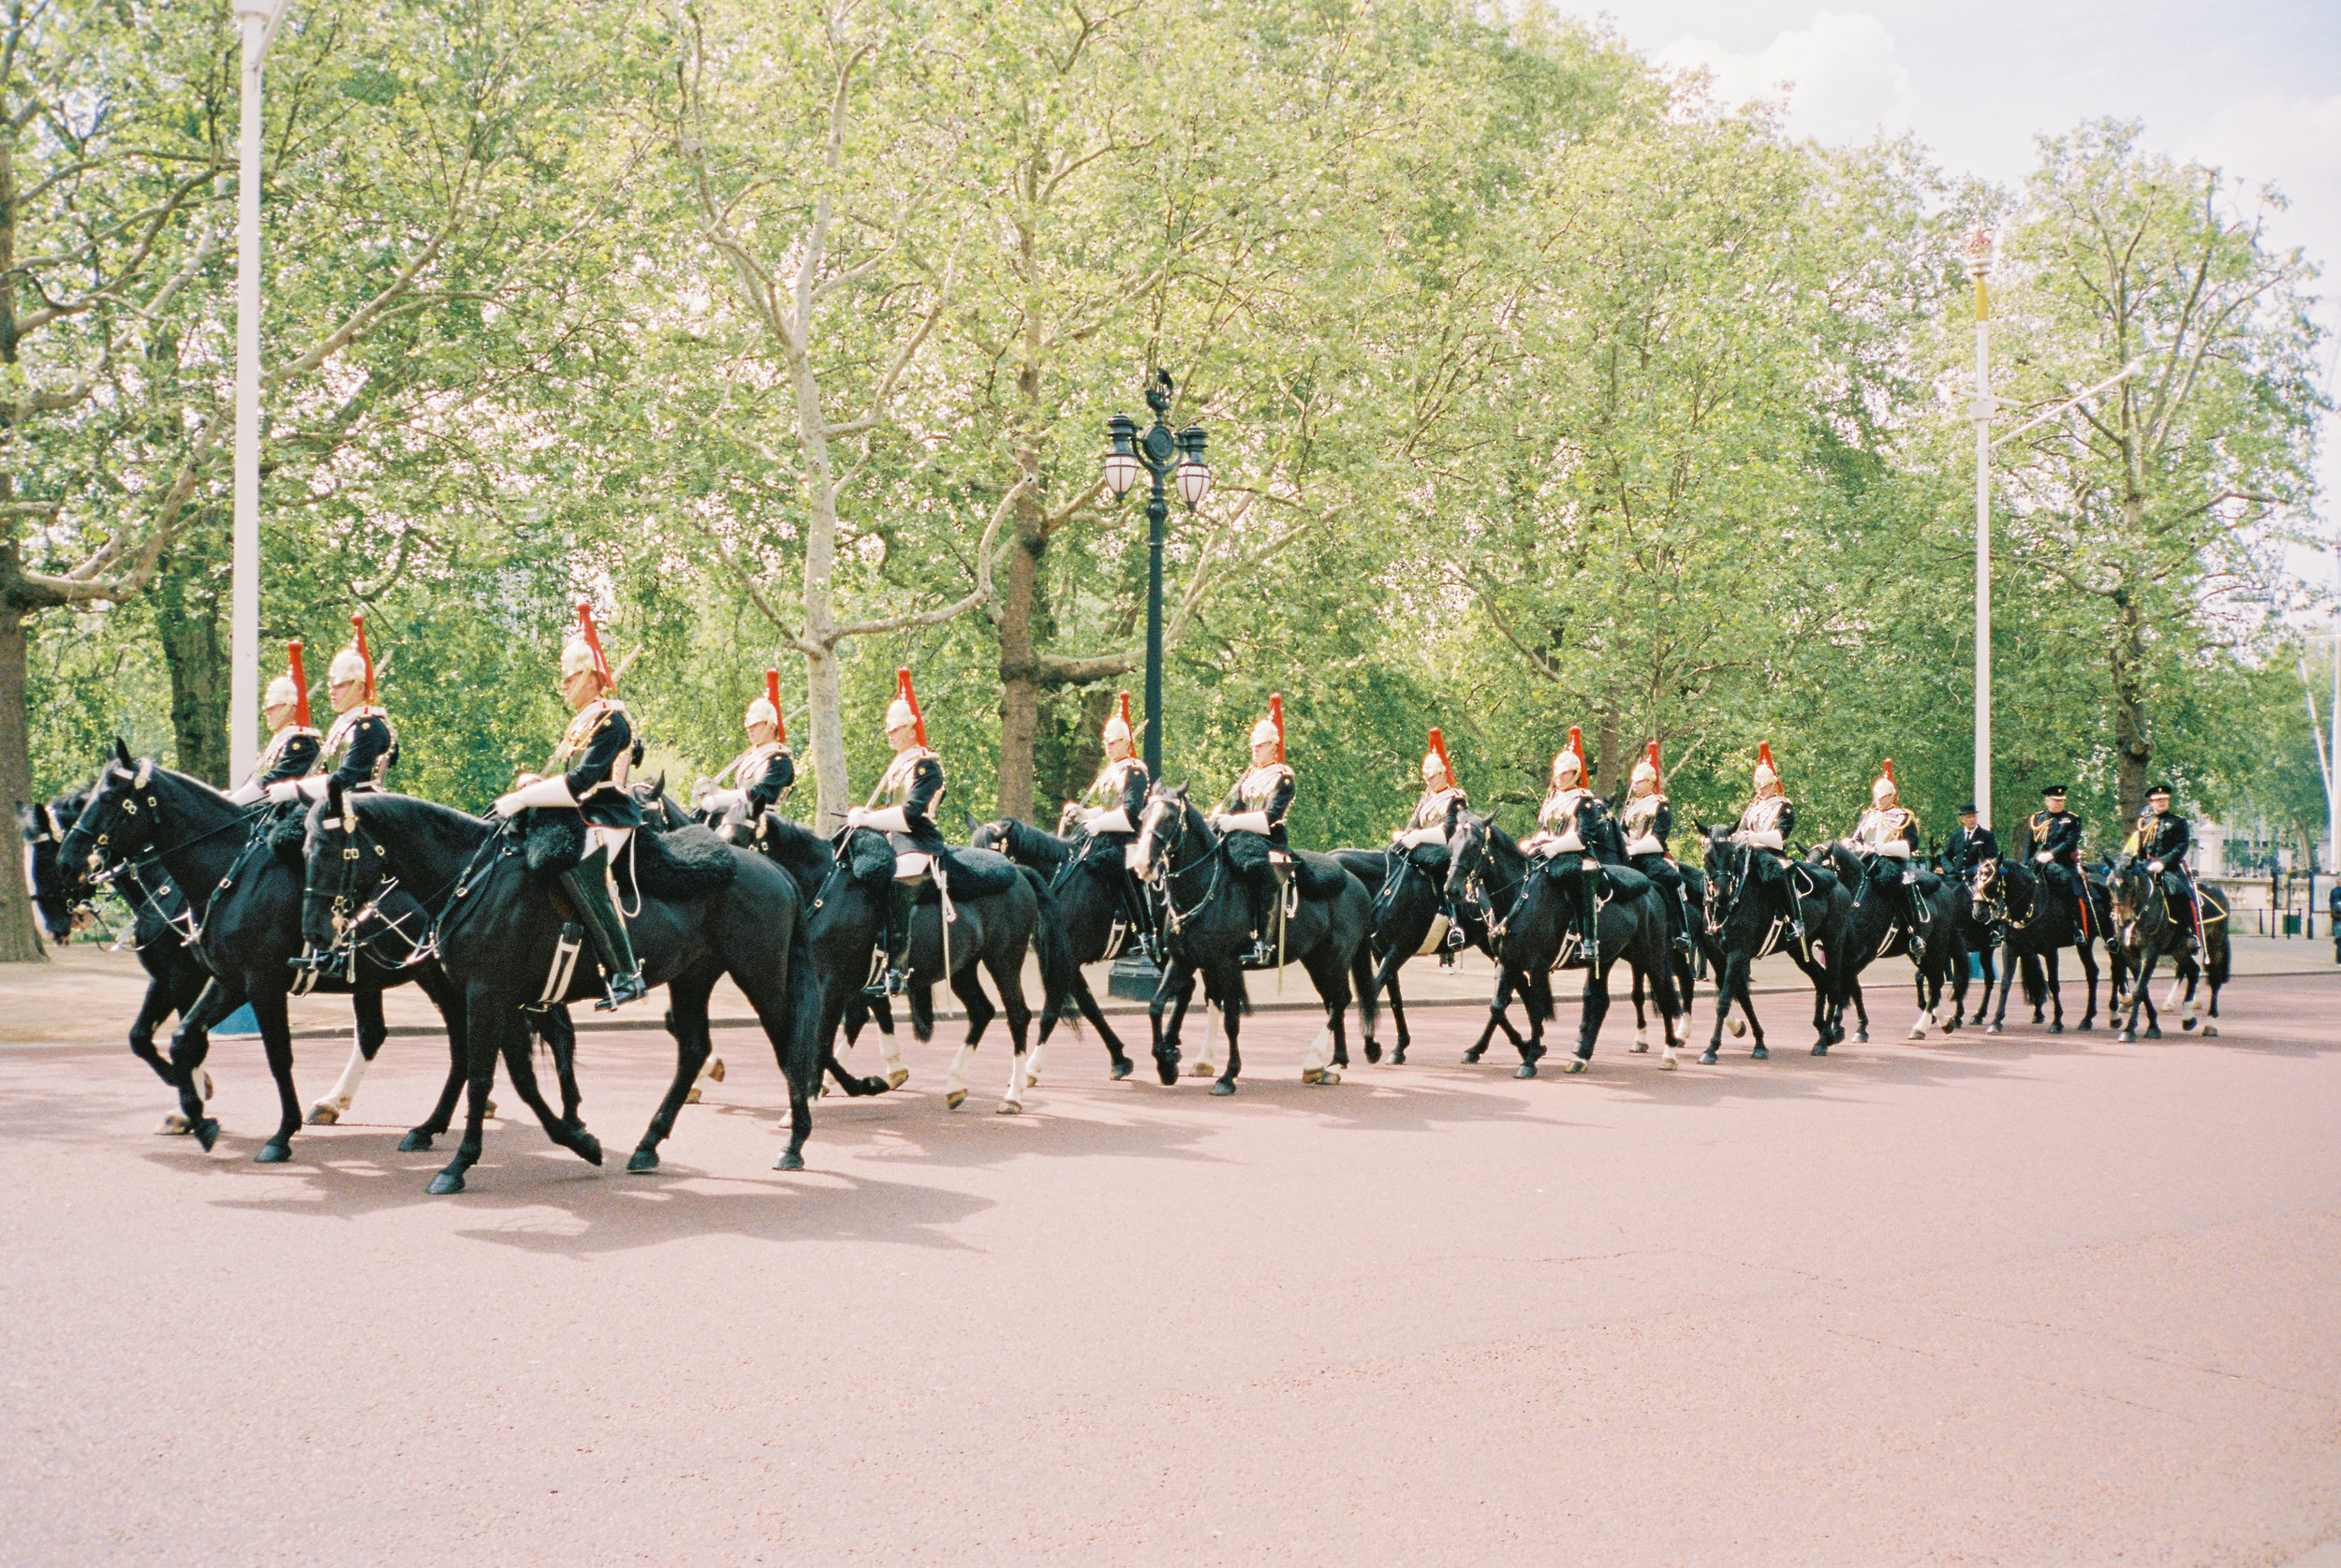 Buckingham Palace | Contax T3 + Portra 400. Scanned on Fuji Frontier SP3000.